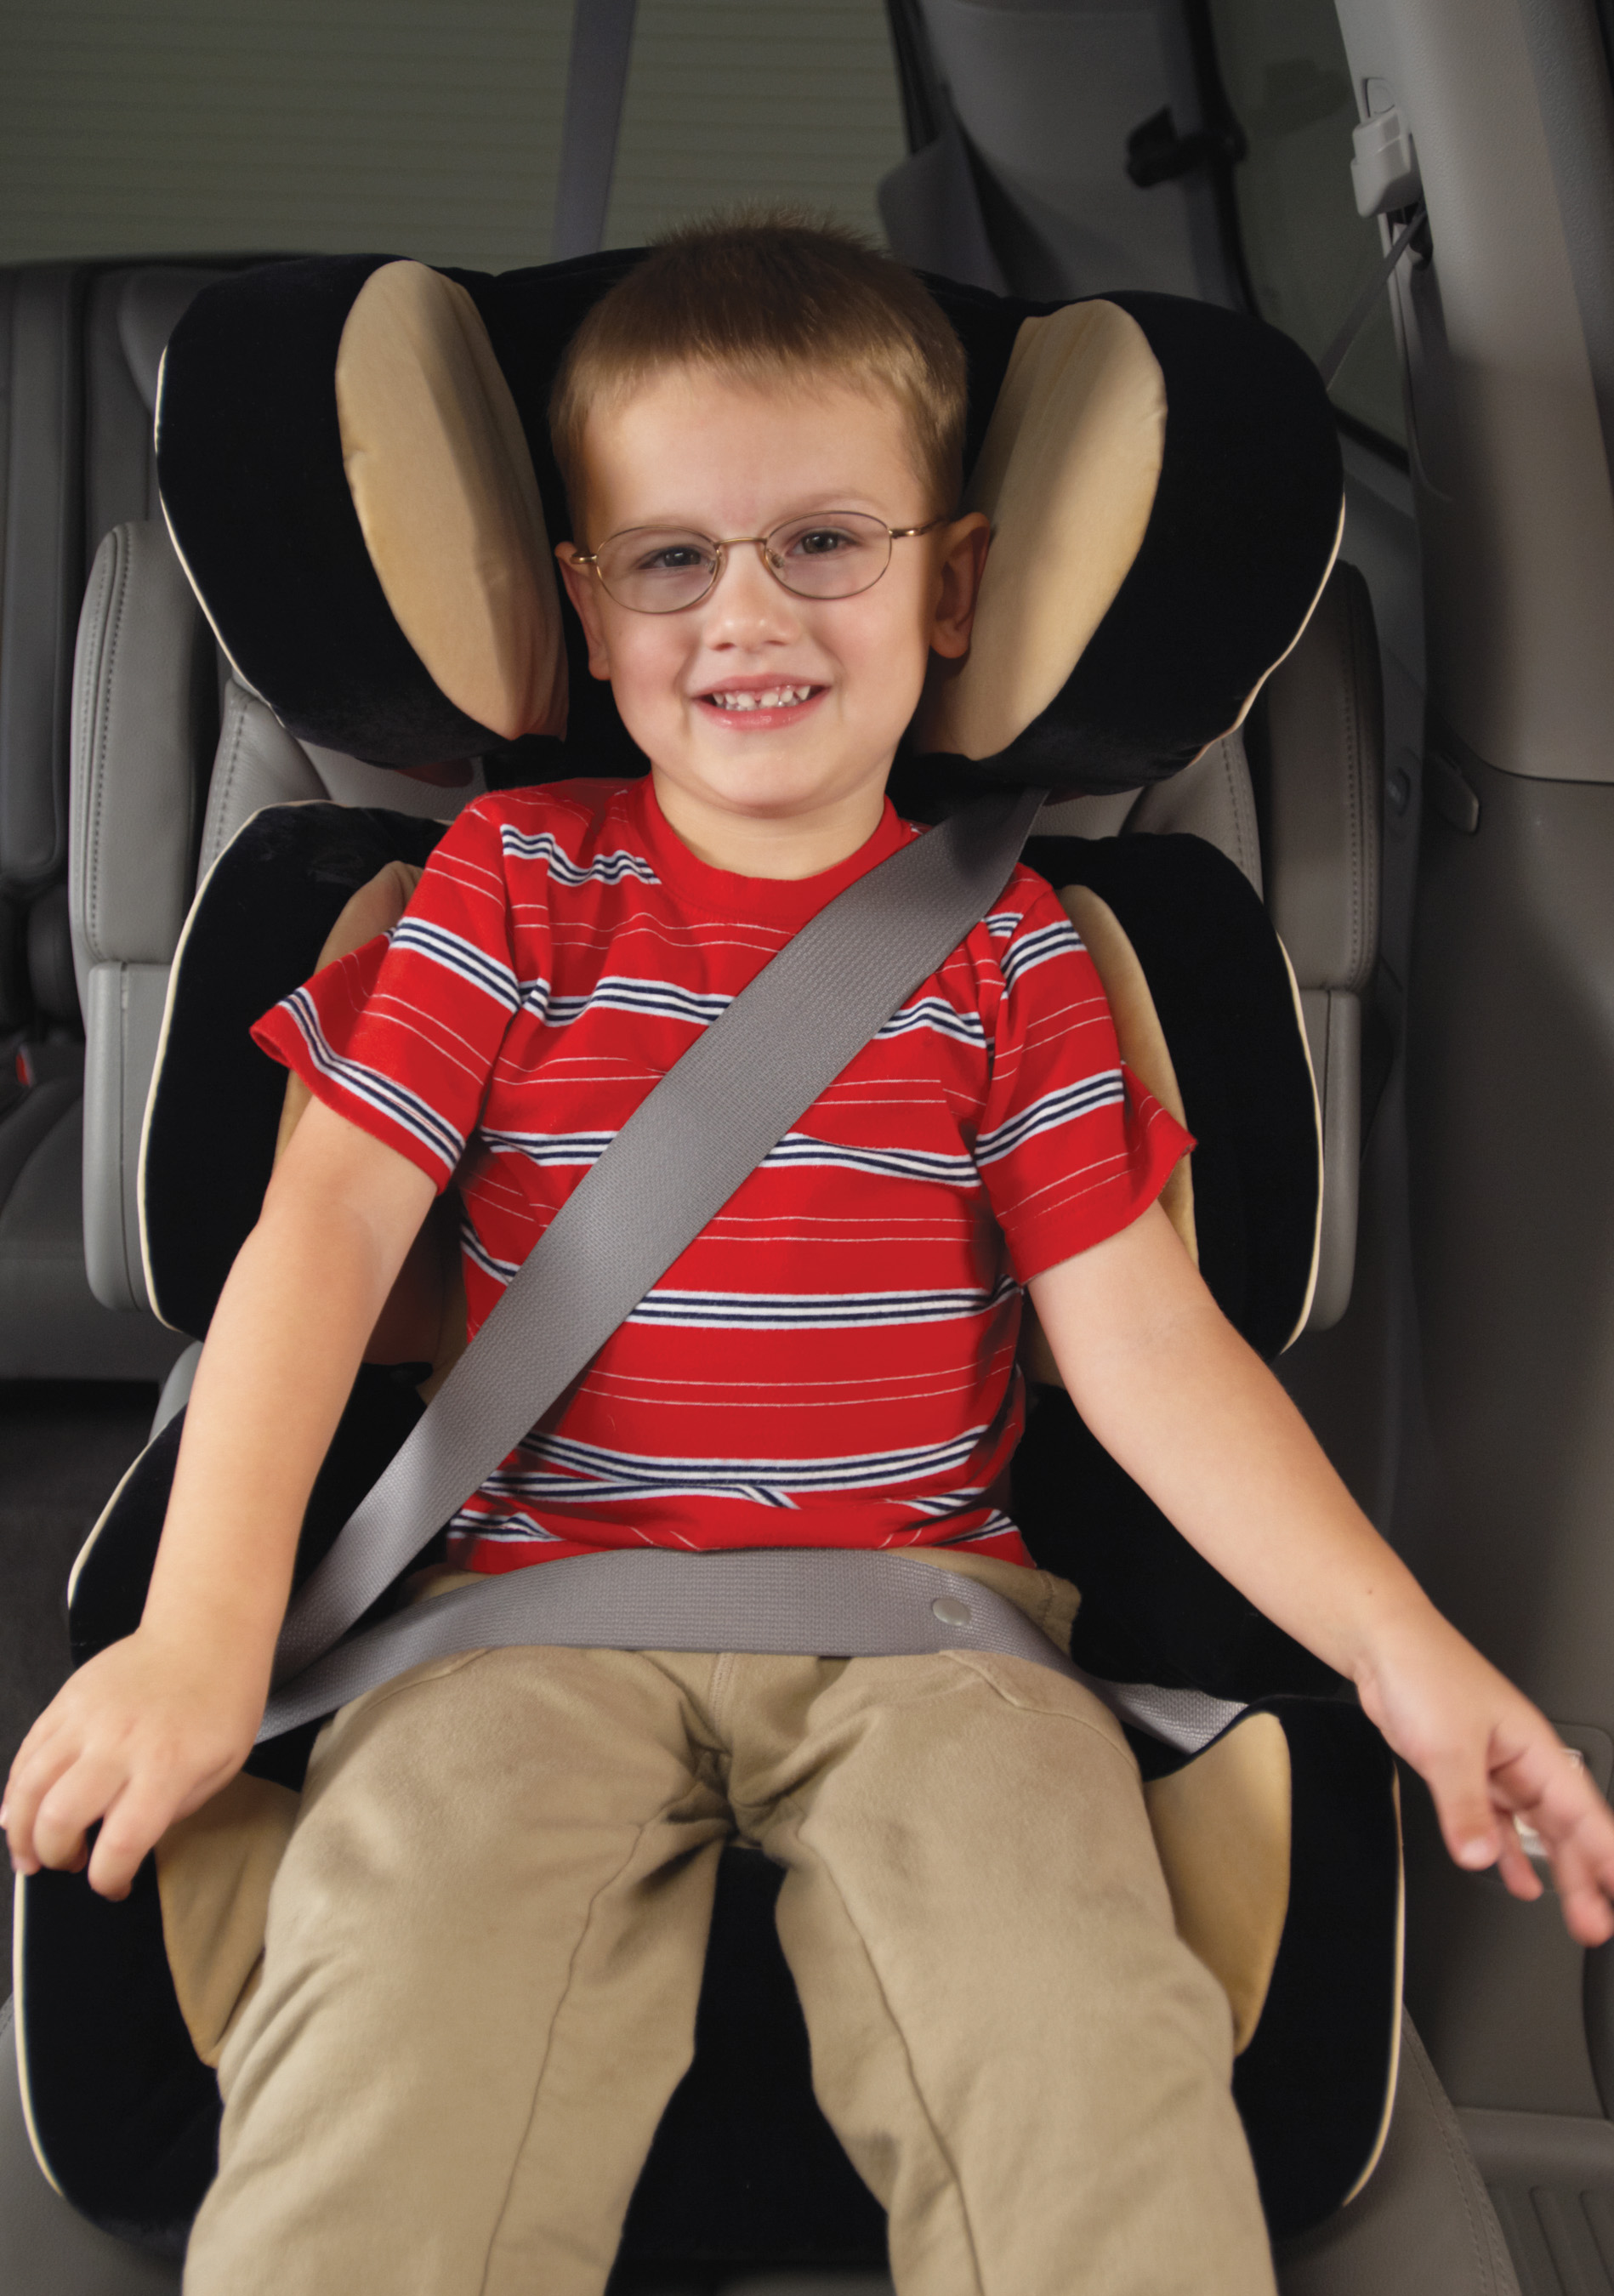 child booster seats which are best which to avoid